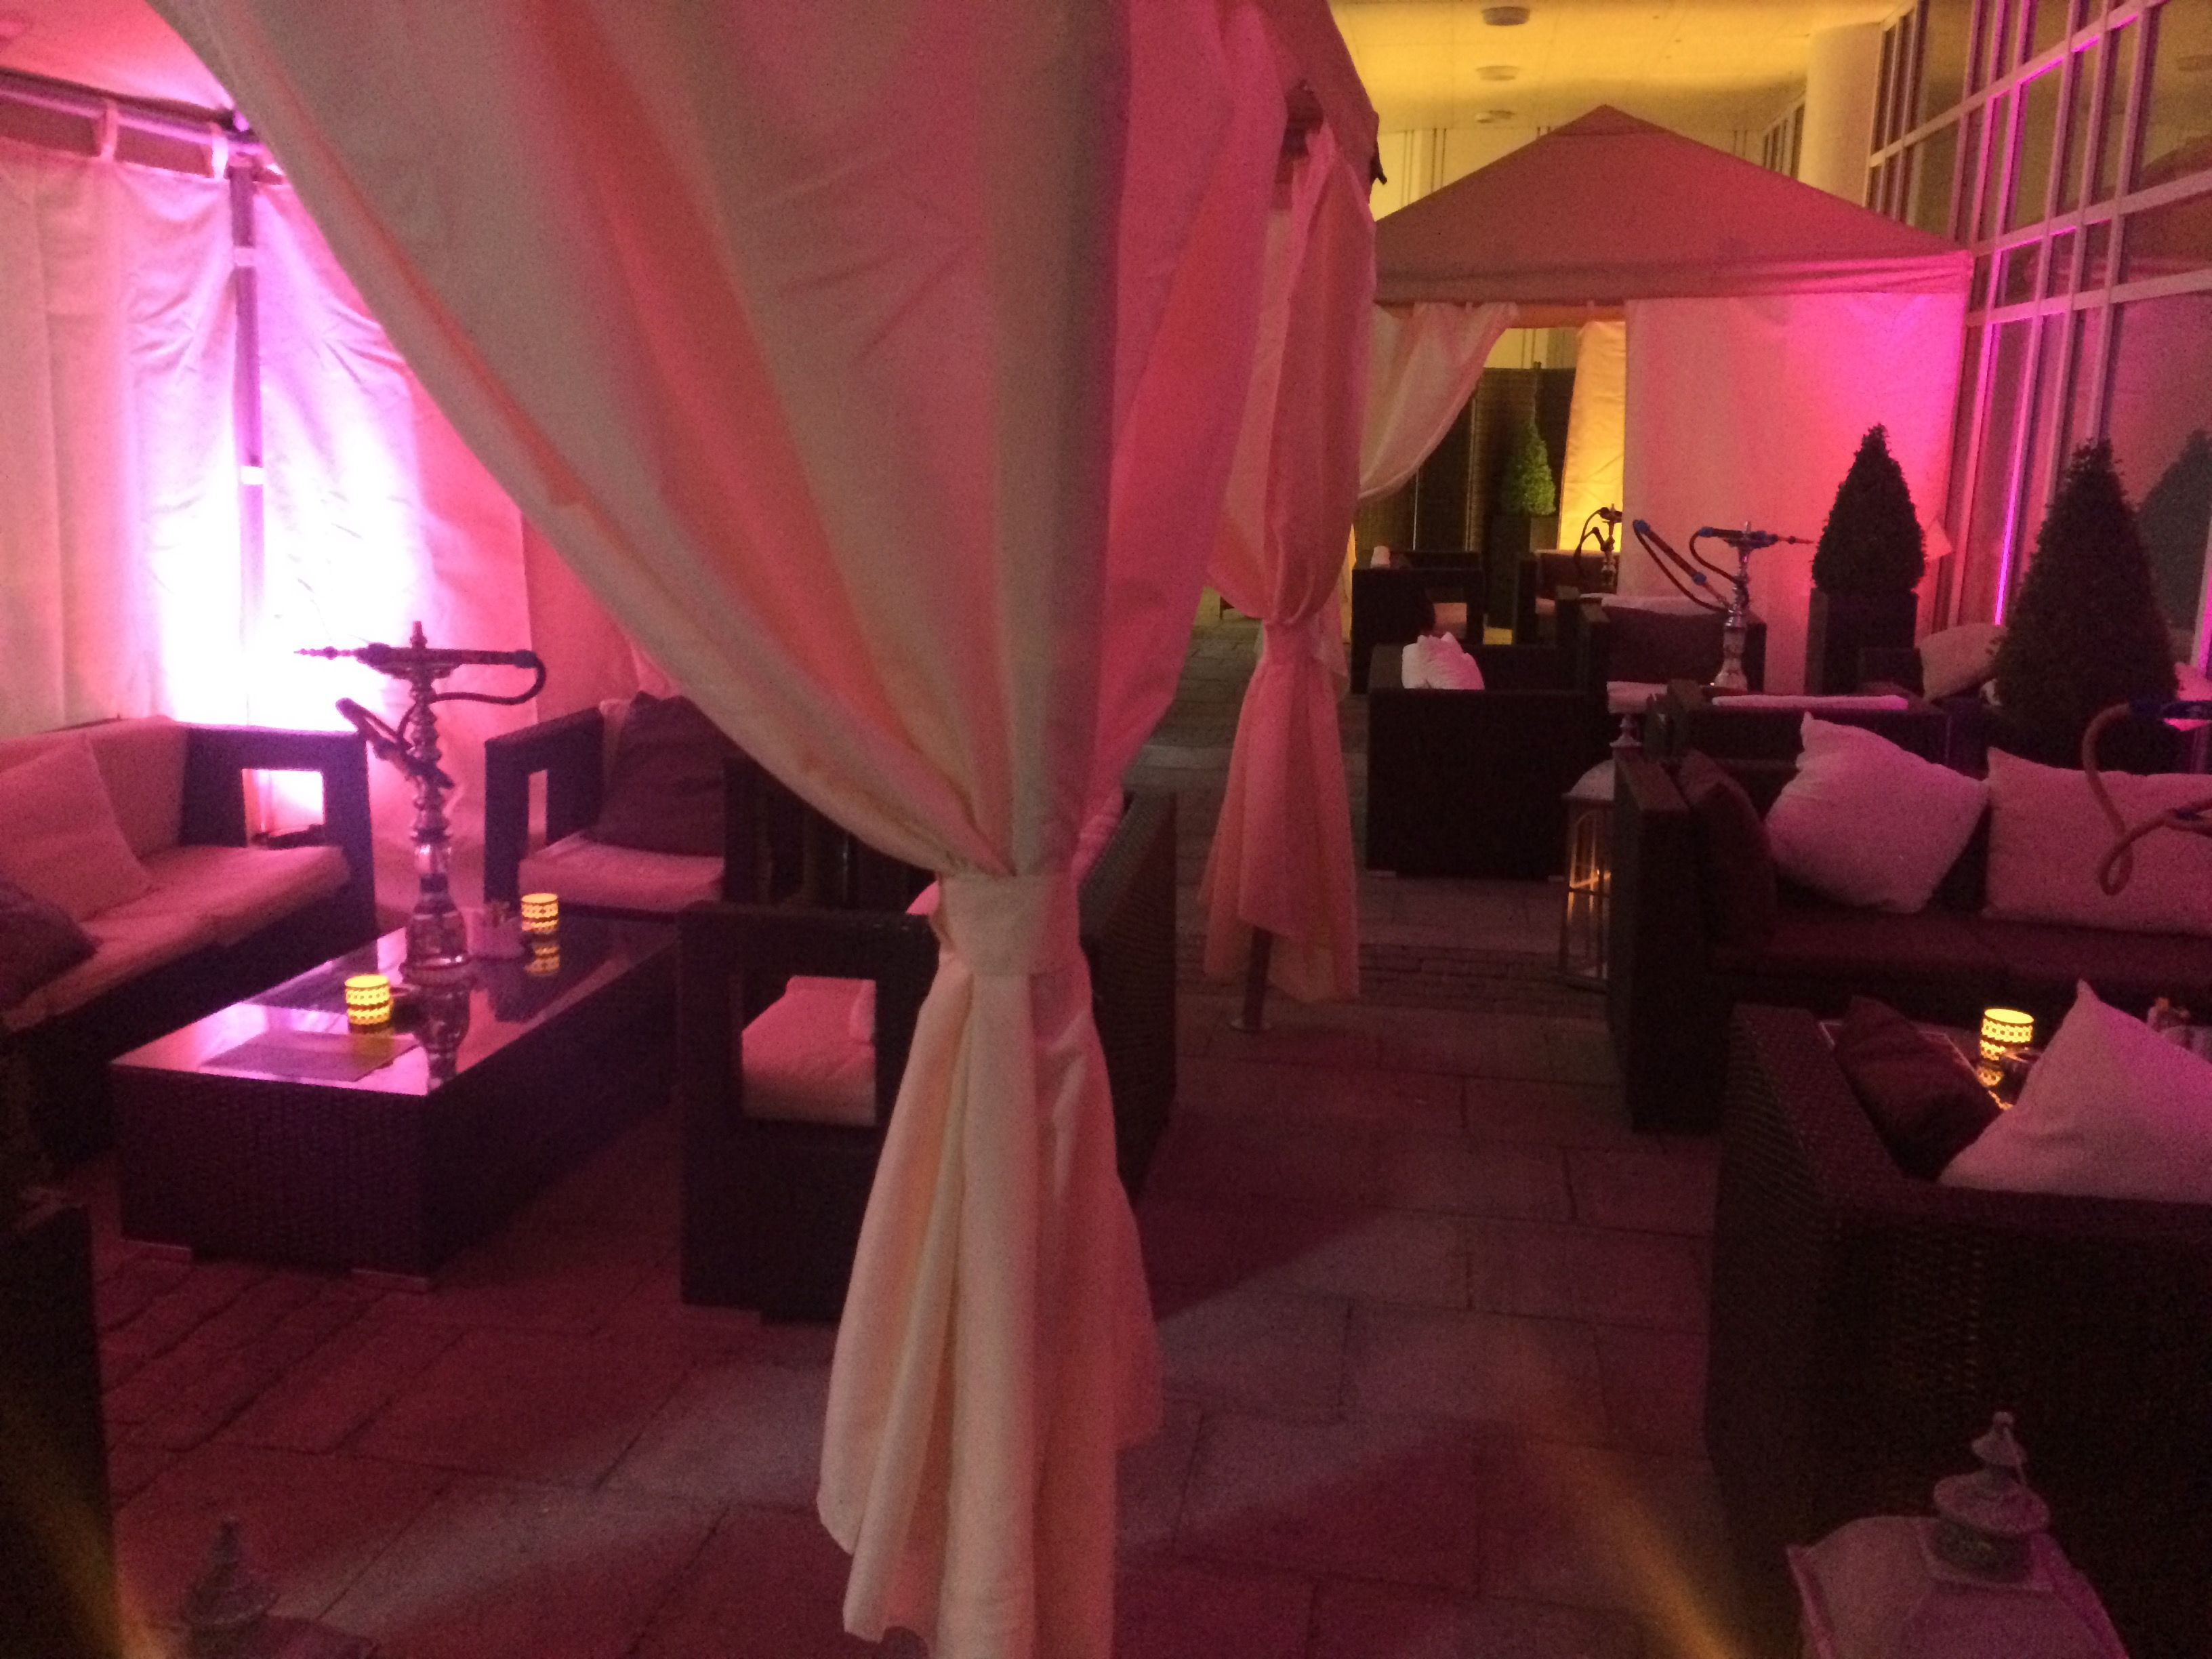 During Summer We Open Our Shisha Lounge And Offer Arabic